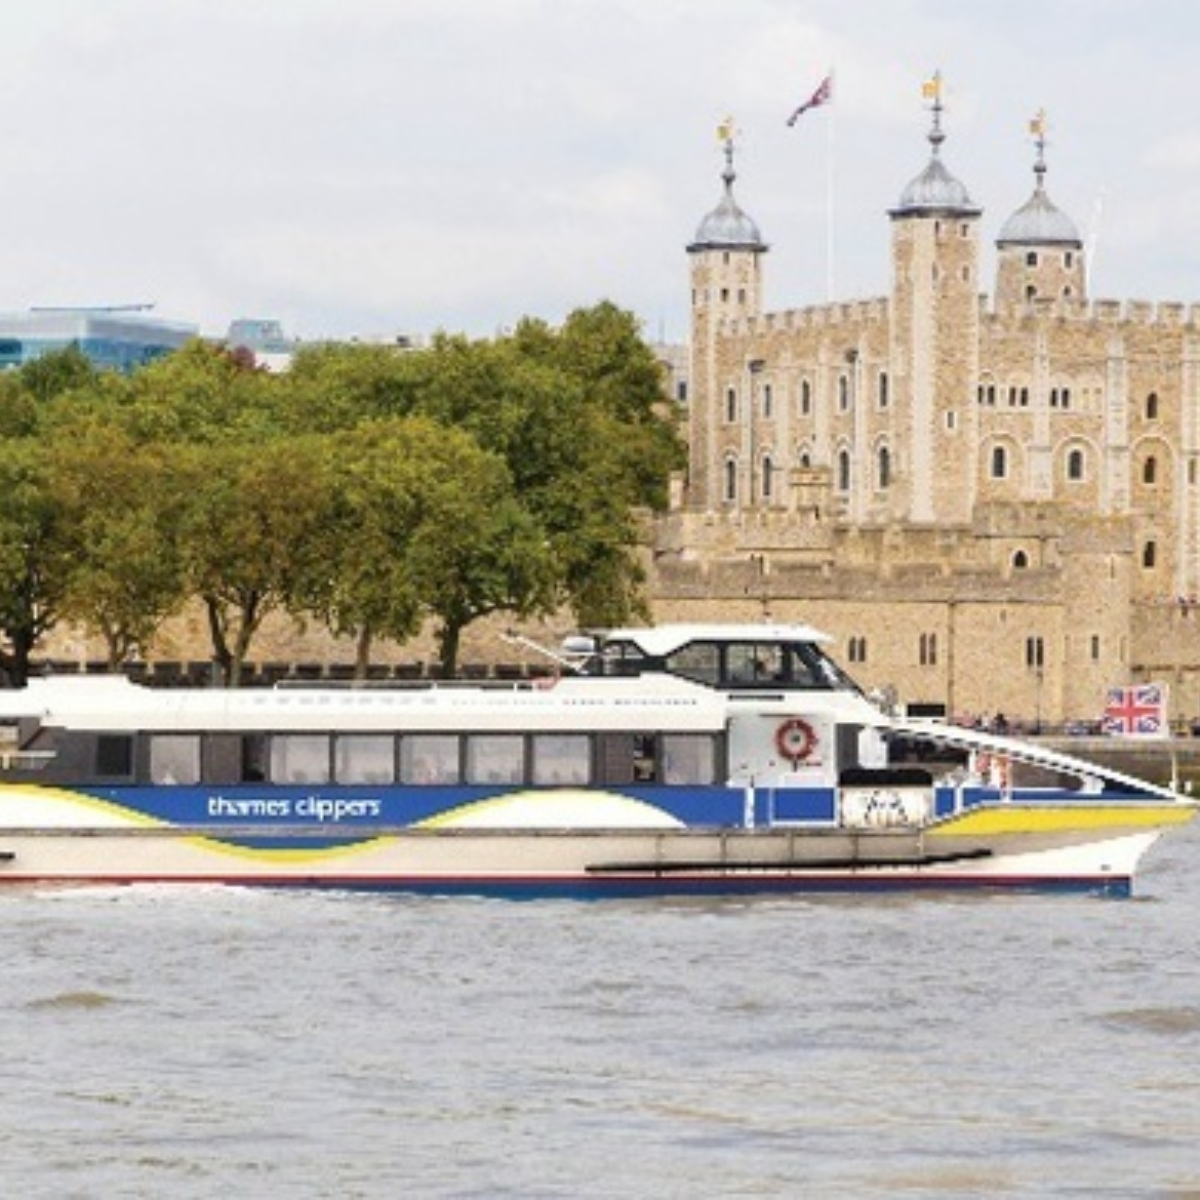 Thames Clippers River Tour Images